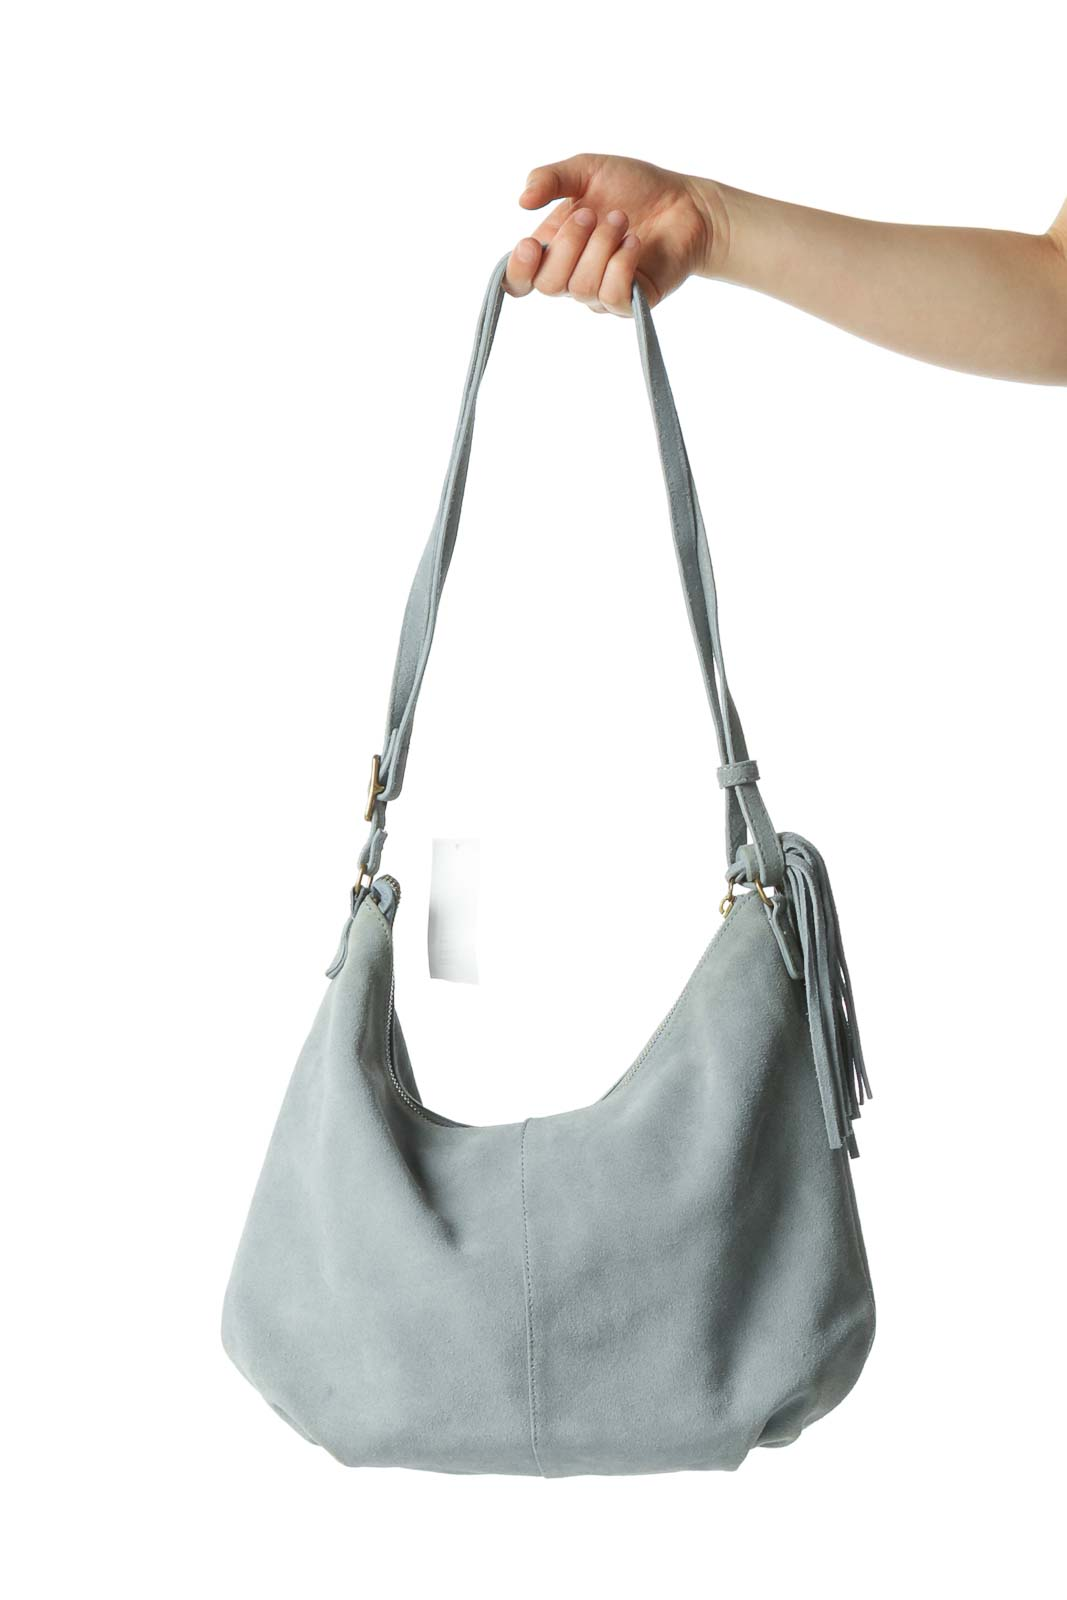 Light Blue Suede Shoulder Bag with Fringe Tassle